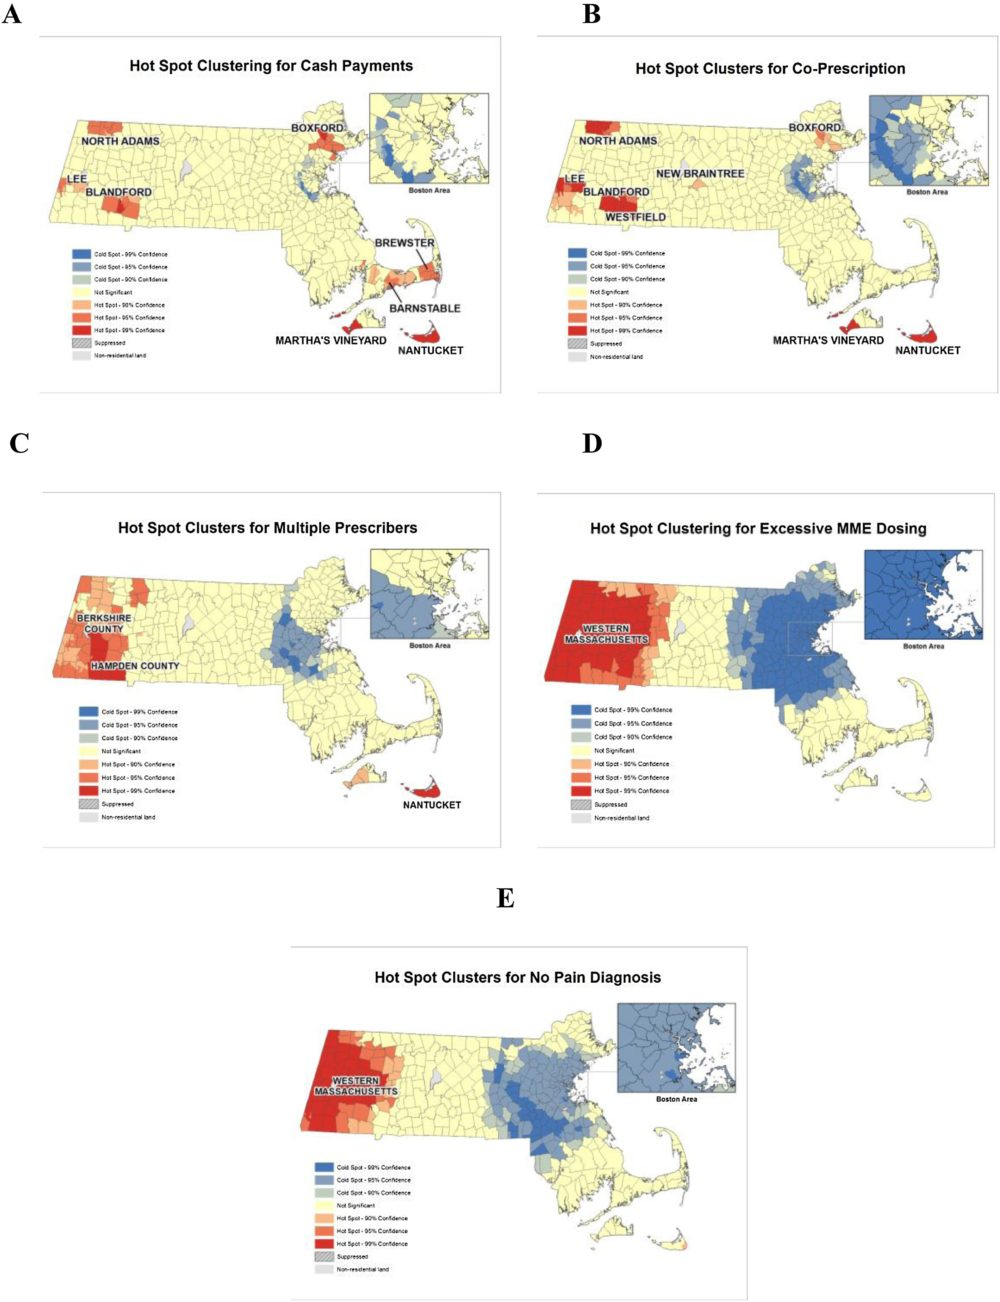 Clustering of potentially inappropriate opioid prescription practices (PIP) in Massachusetts from 2011 to 2015. (Courtesy the International Journal of Drug Policy)